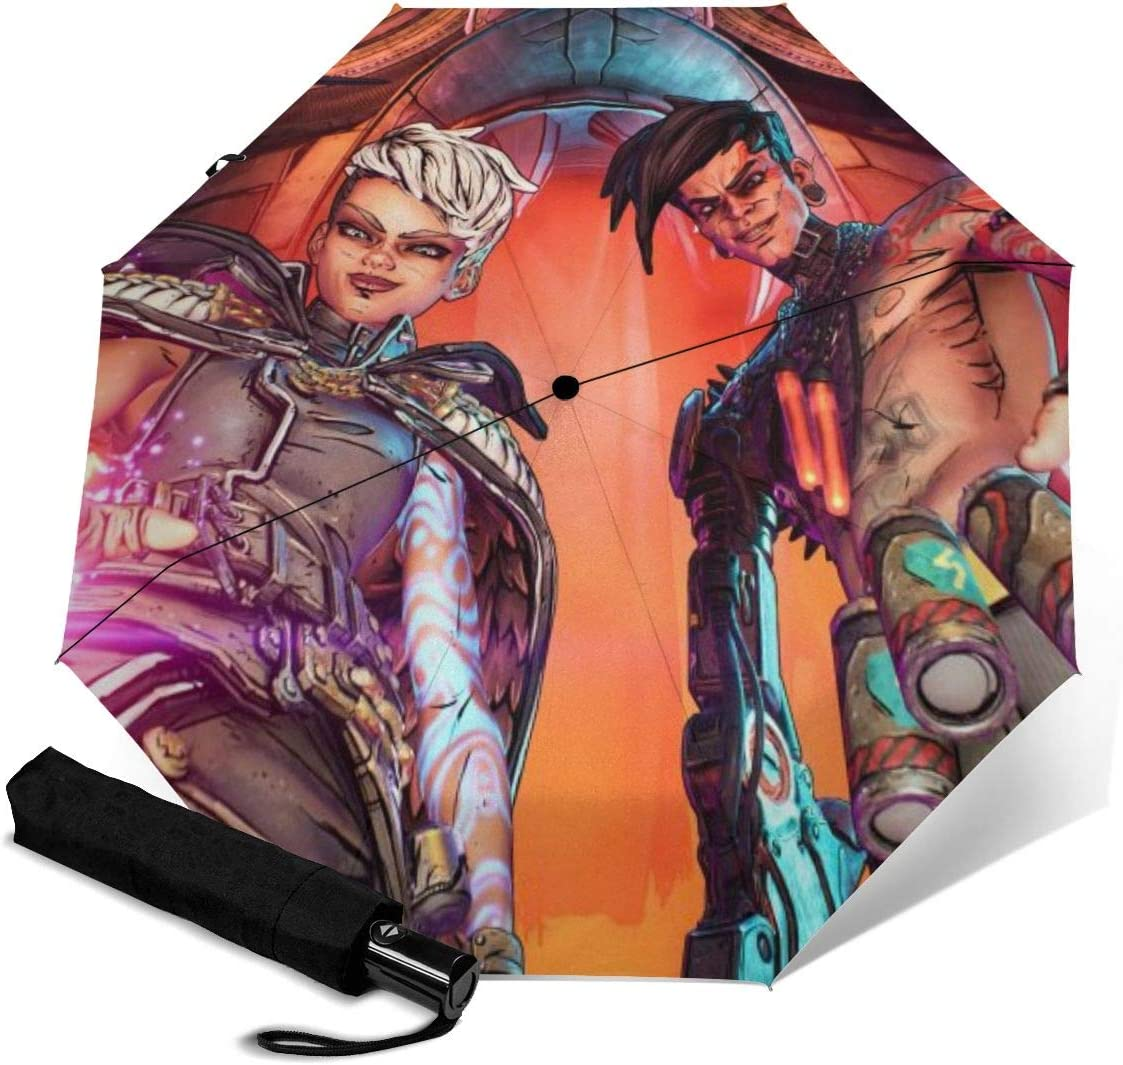 Borderlands Calypso Twins 3D Pattern PG Cloth Lightweight Foldable Tri-fold Umbrealla For Rain Sunshade Anti-UV,Qucik-dry Wind Resistance Automatic Umbrellas